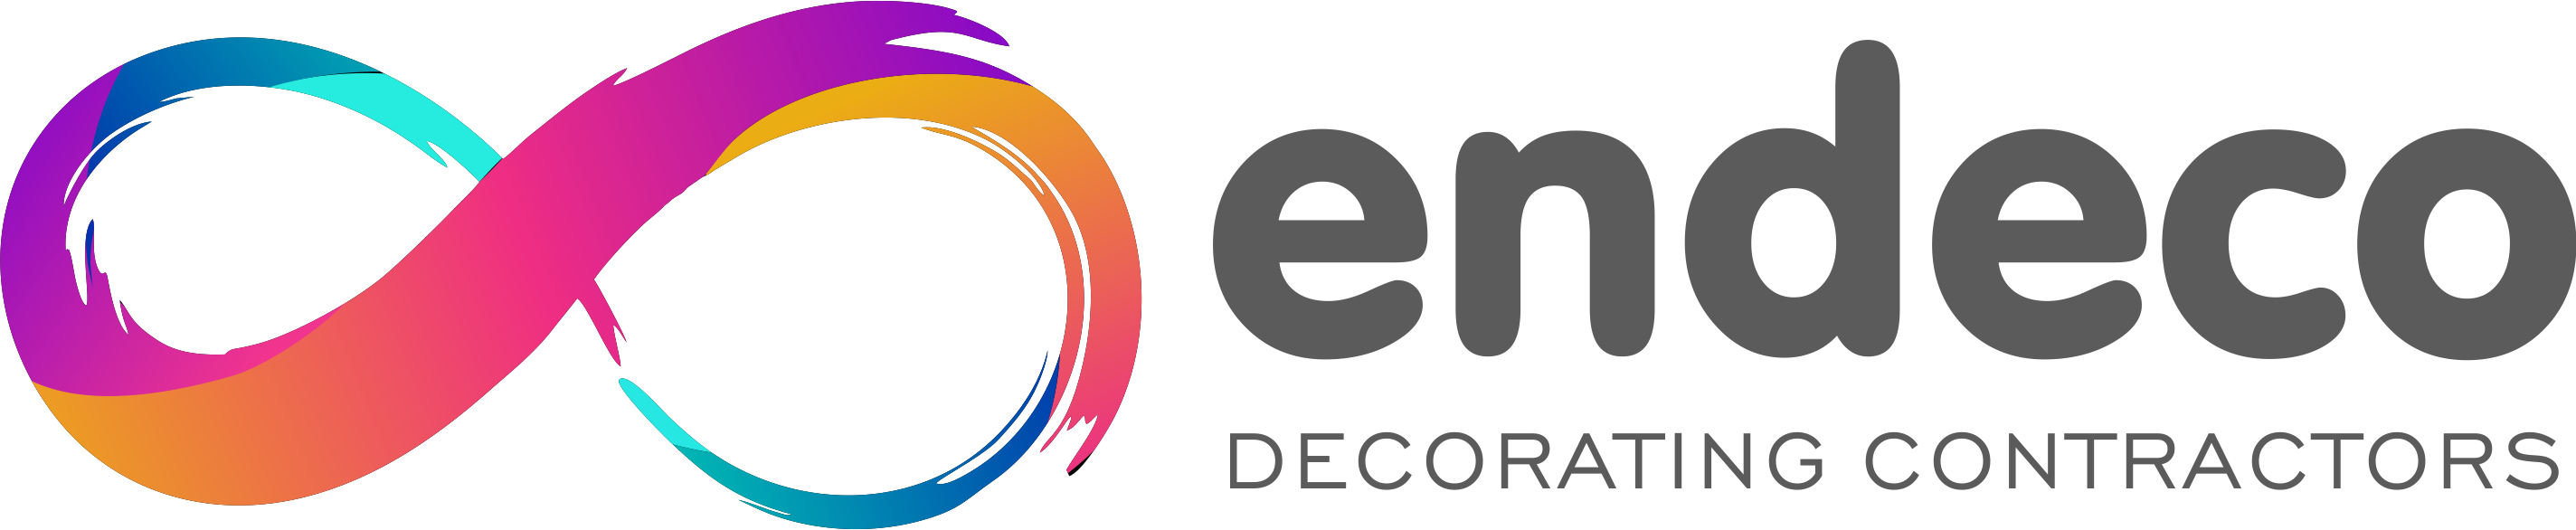 Endeco Painting and Decorating